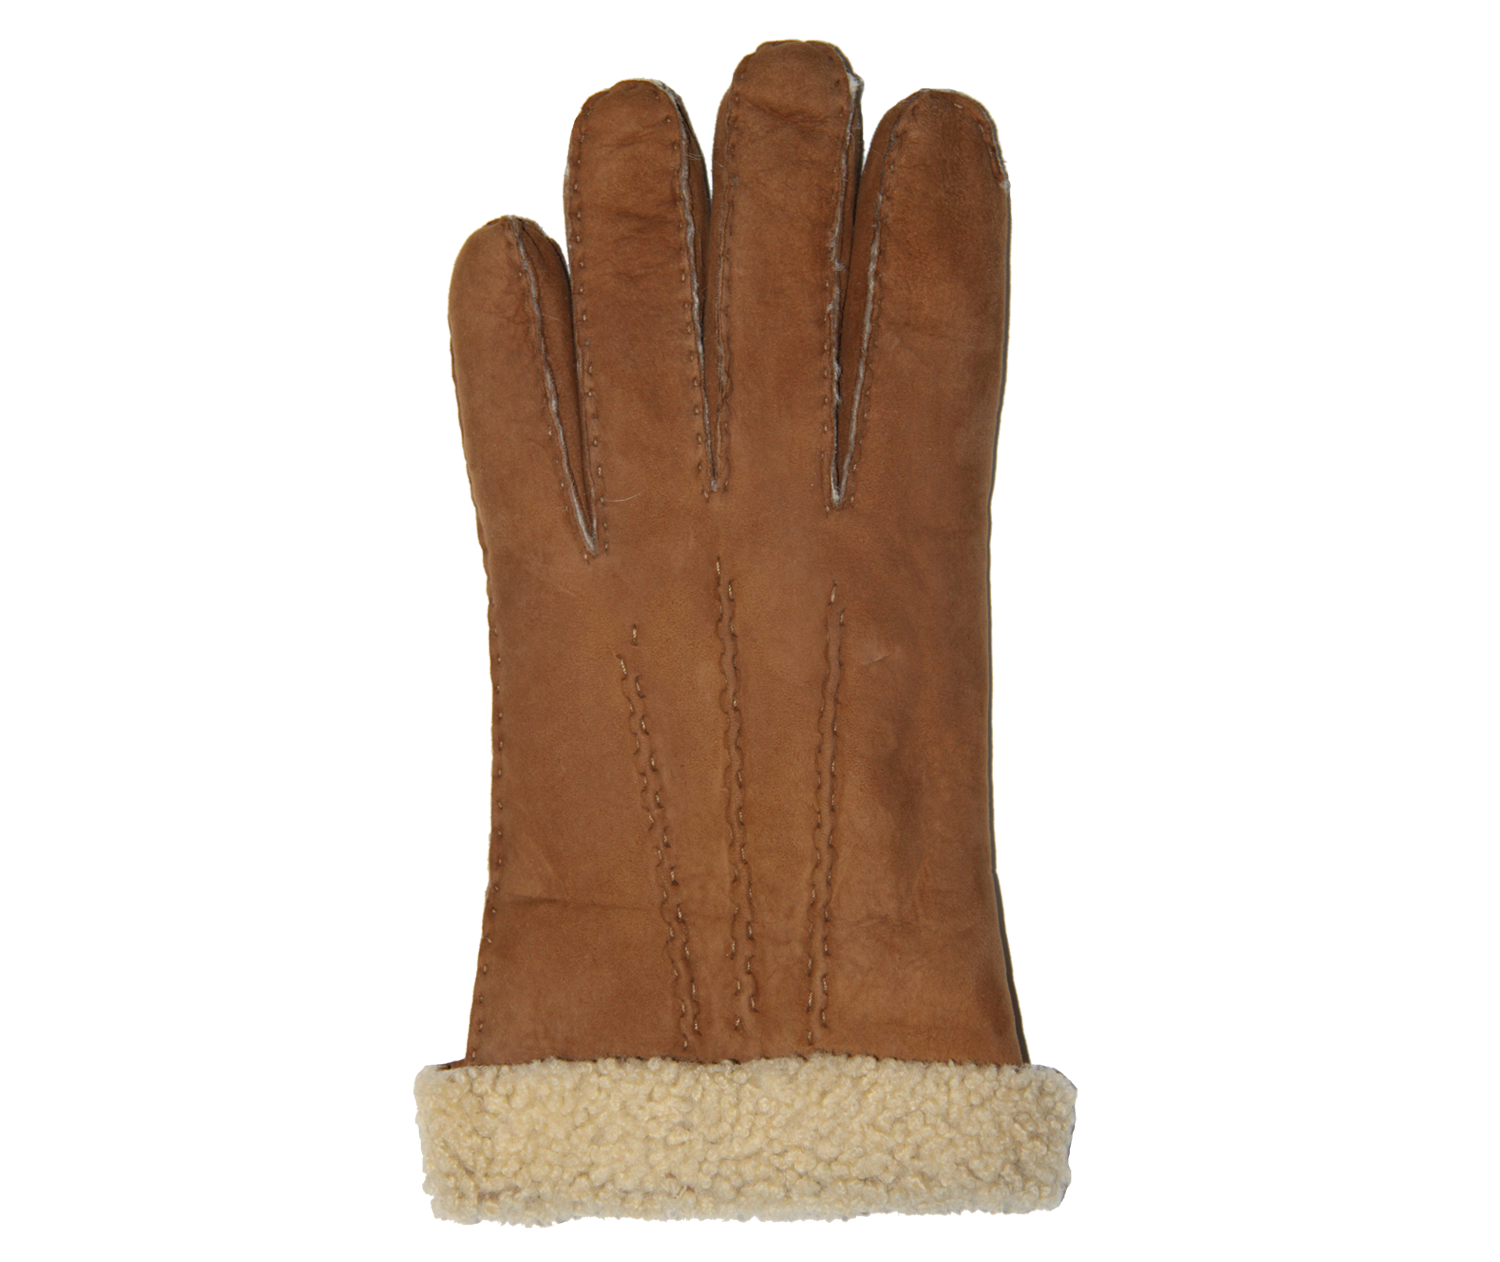 65307f9e2e4 Gants homme - KORYOM - LUXURY LEATHER GOODS - MAROQUINIER SELLIER ...